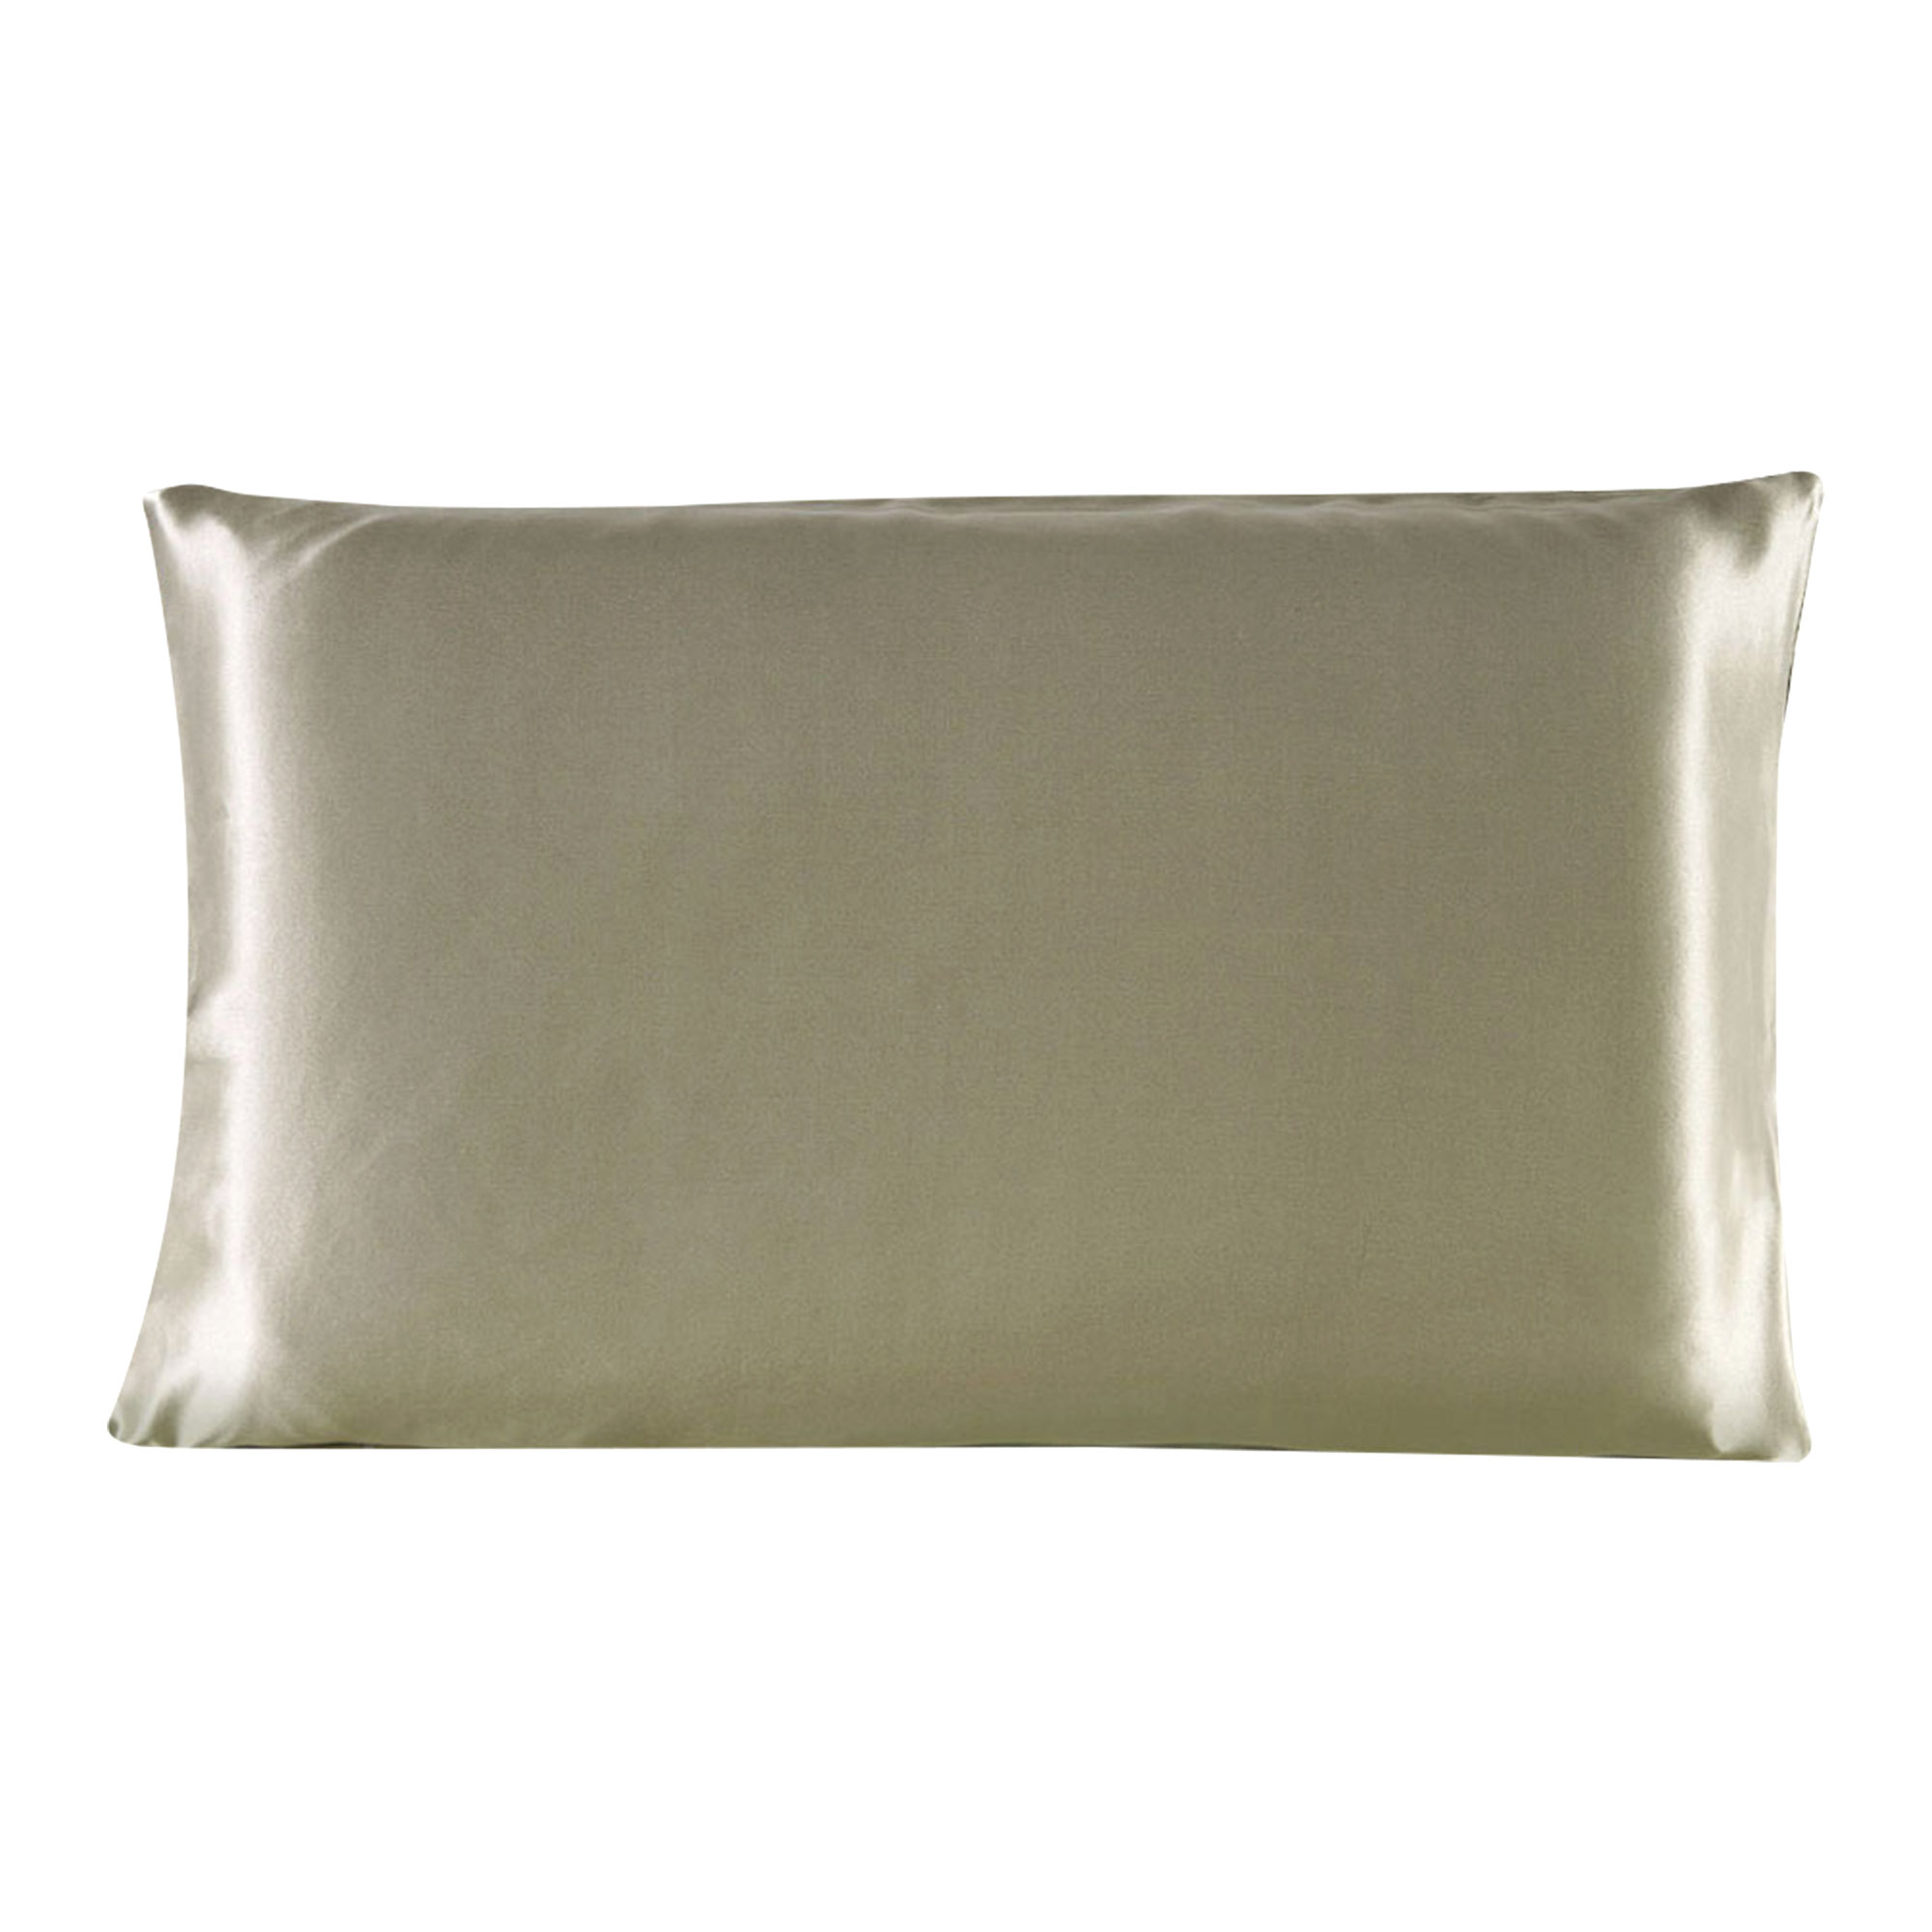 100% Mulberry Silk Fabric Pillow Case Cover Pillowcase Light Brown King Size